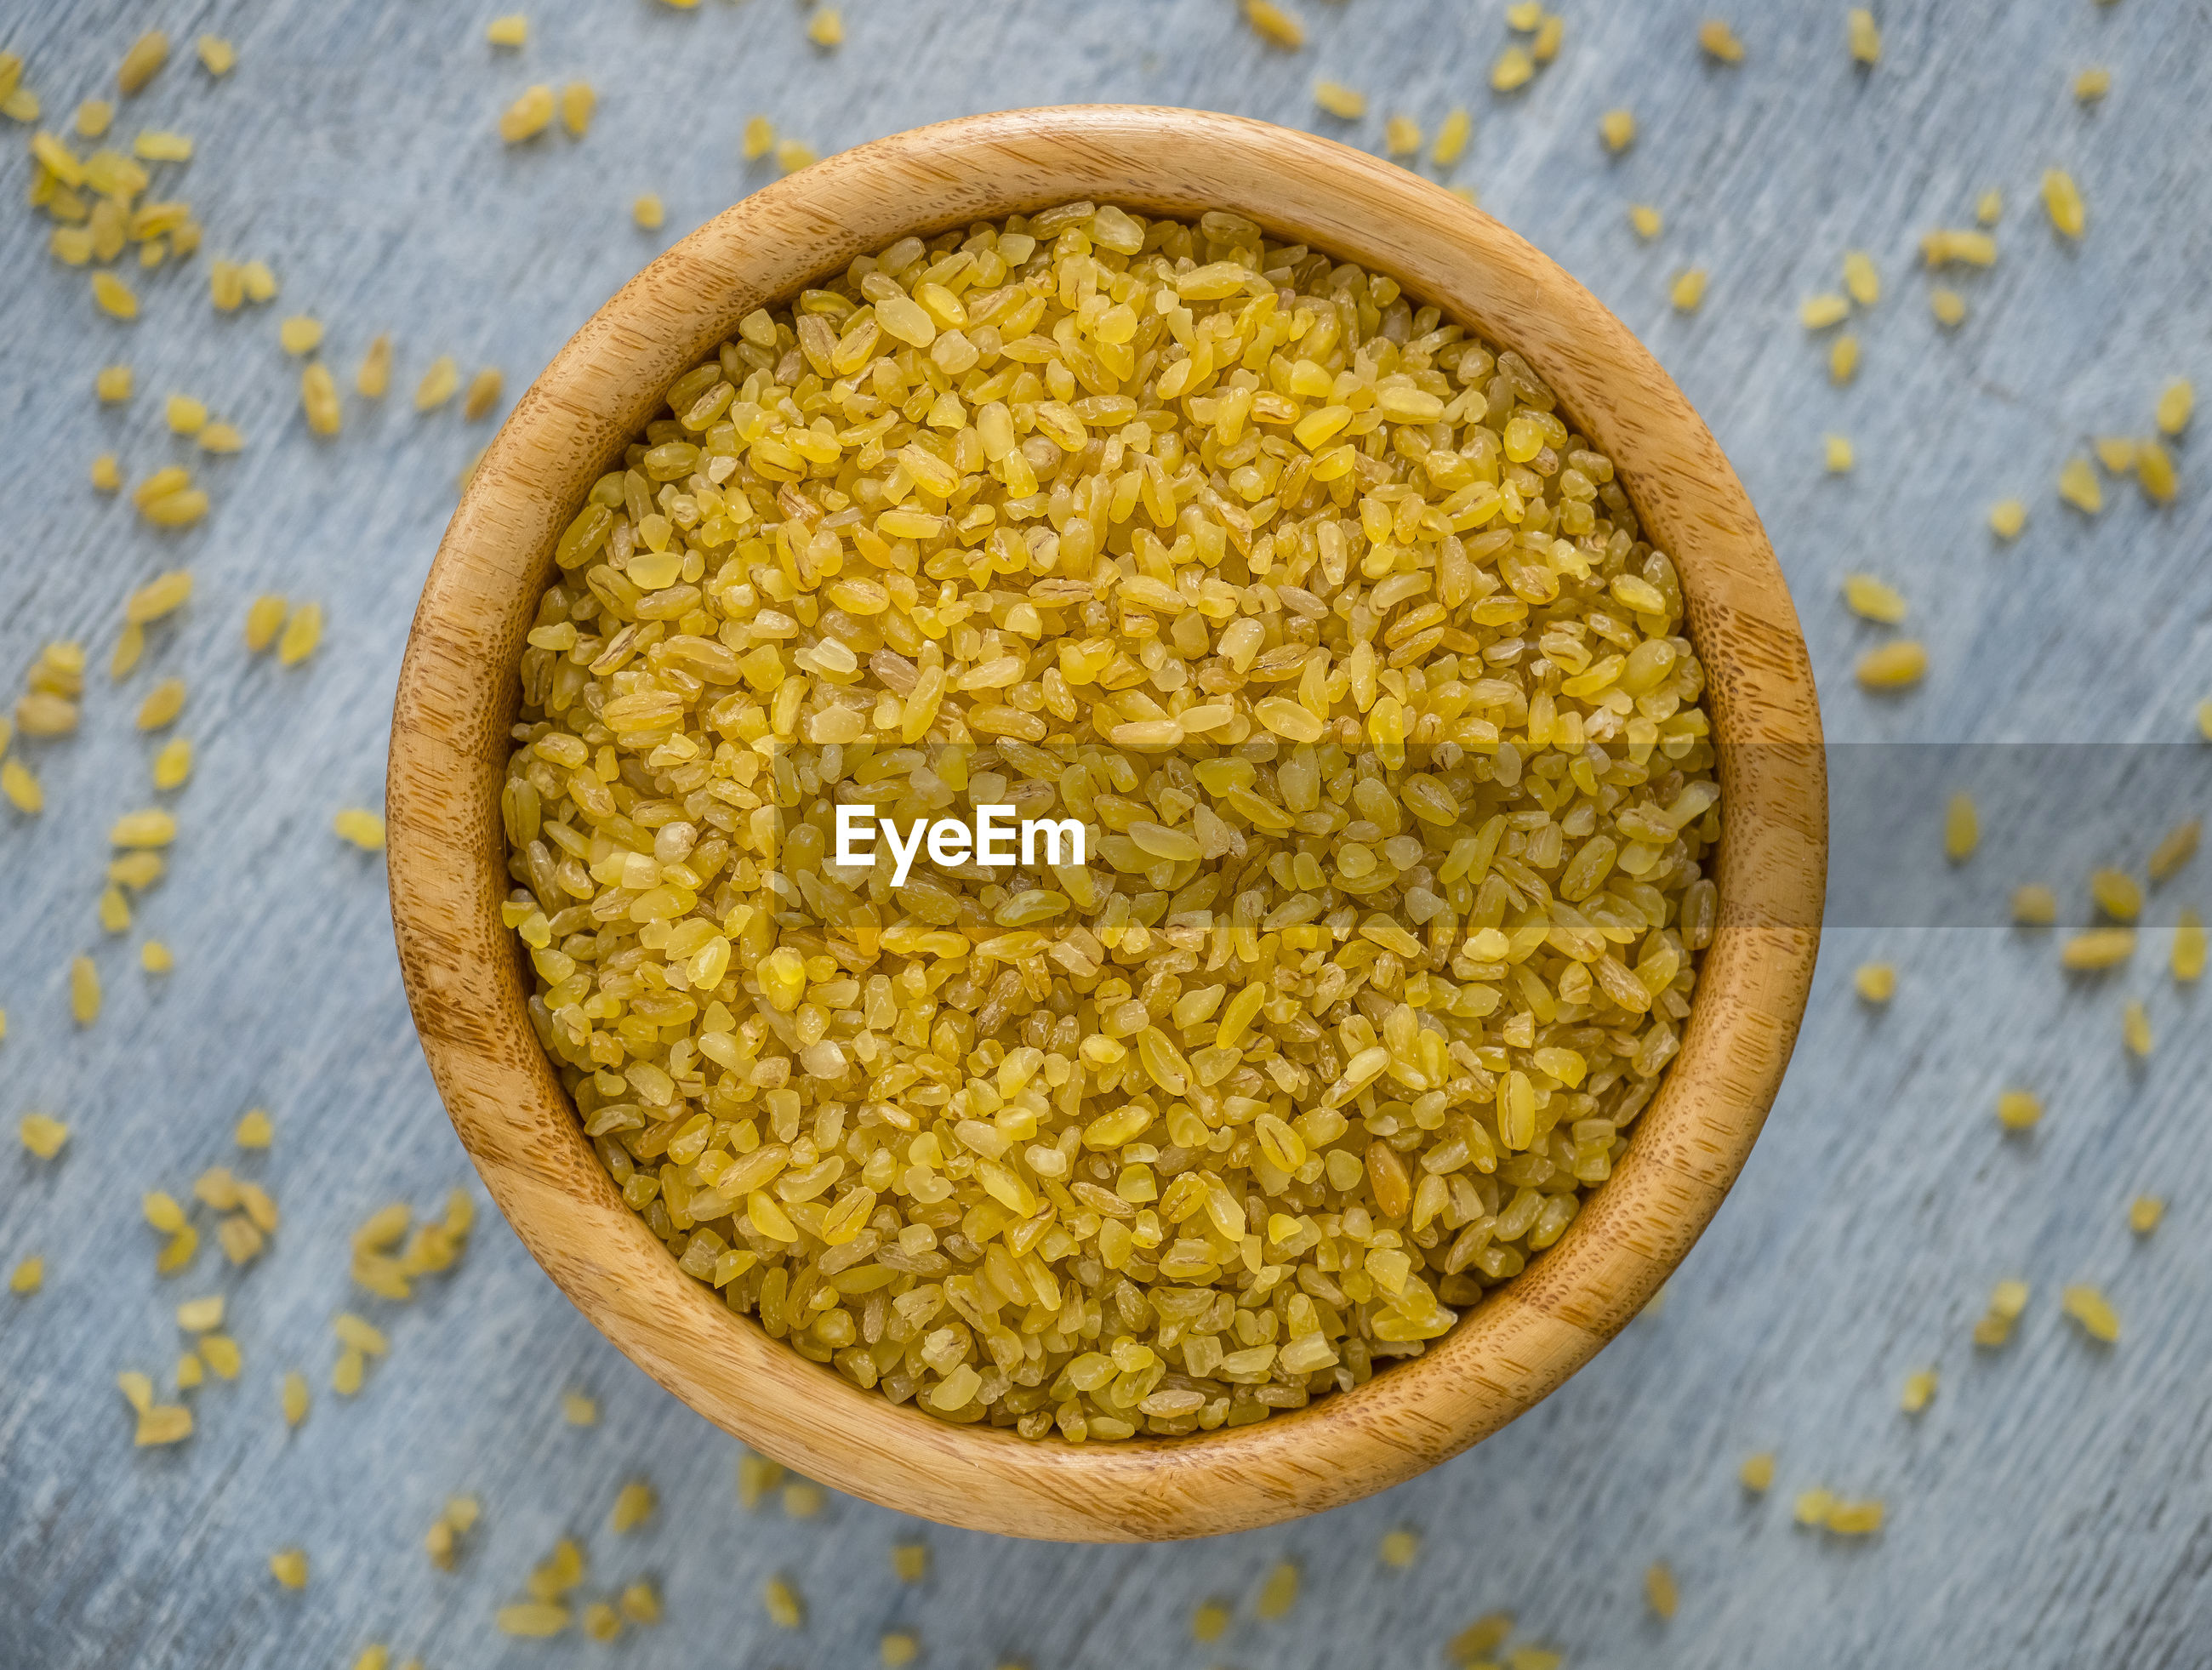 Raw bulgur groats in a plate on the table